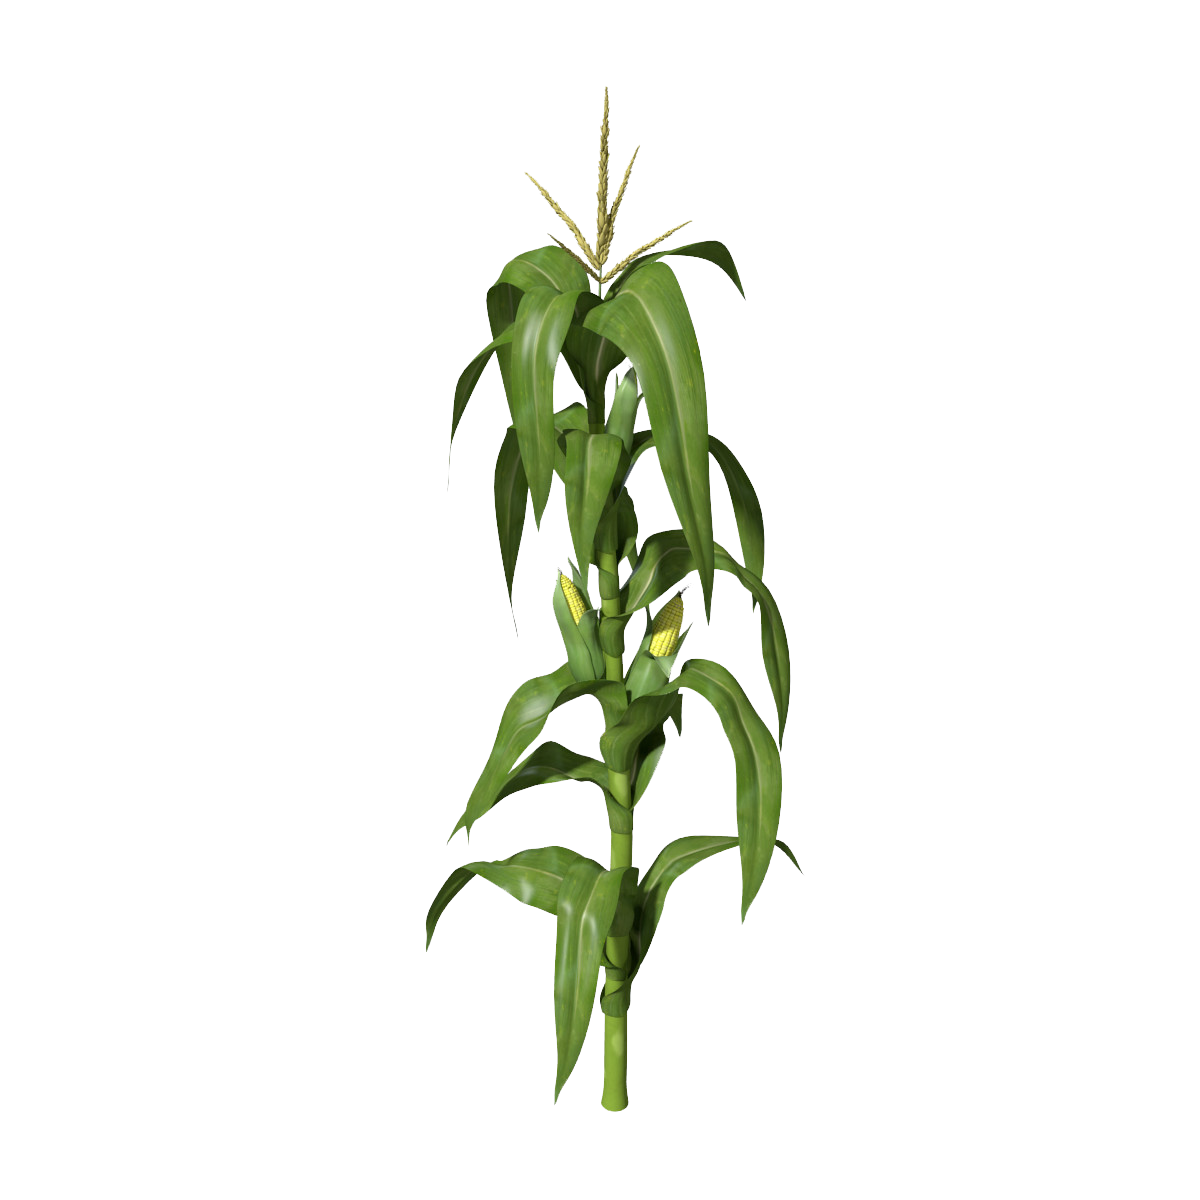 Corn plant clipart for kids - Jowar Plant PNG